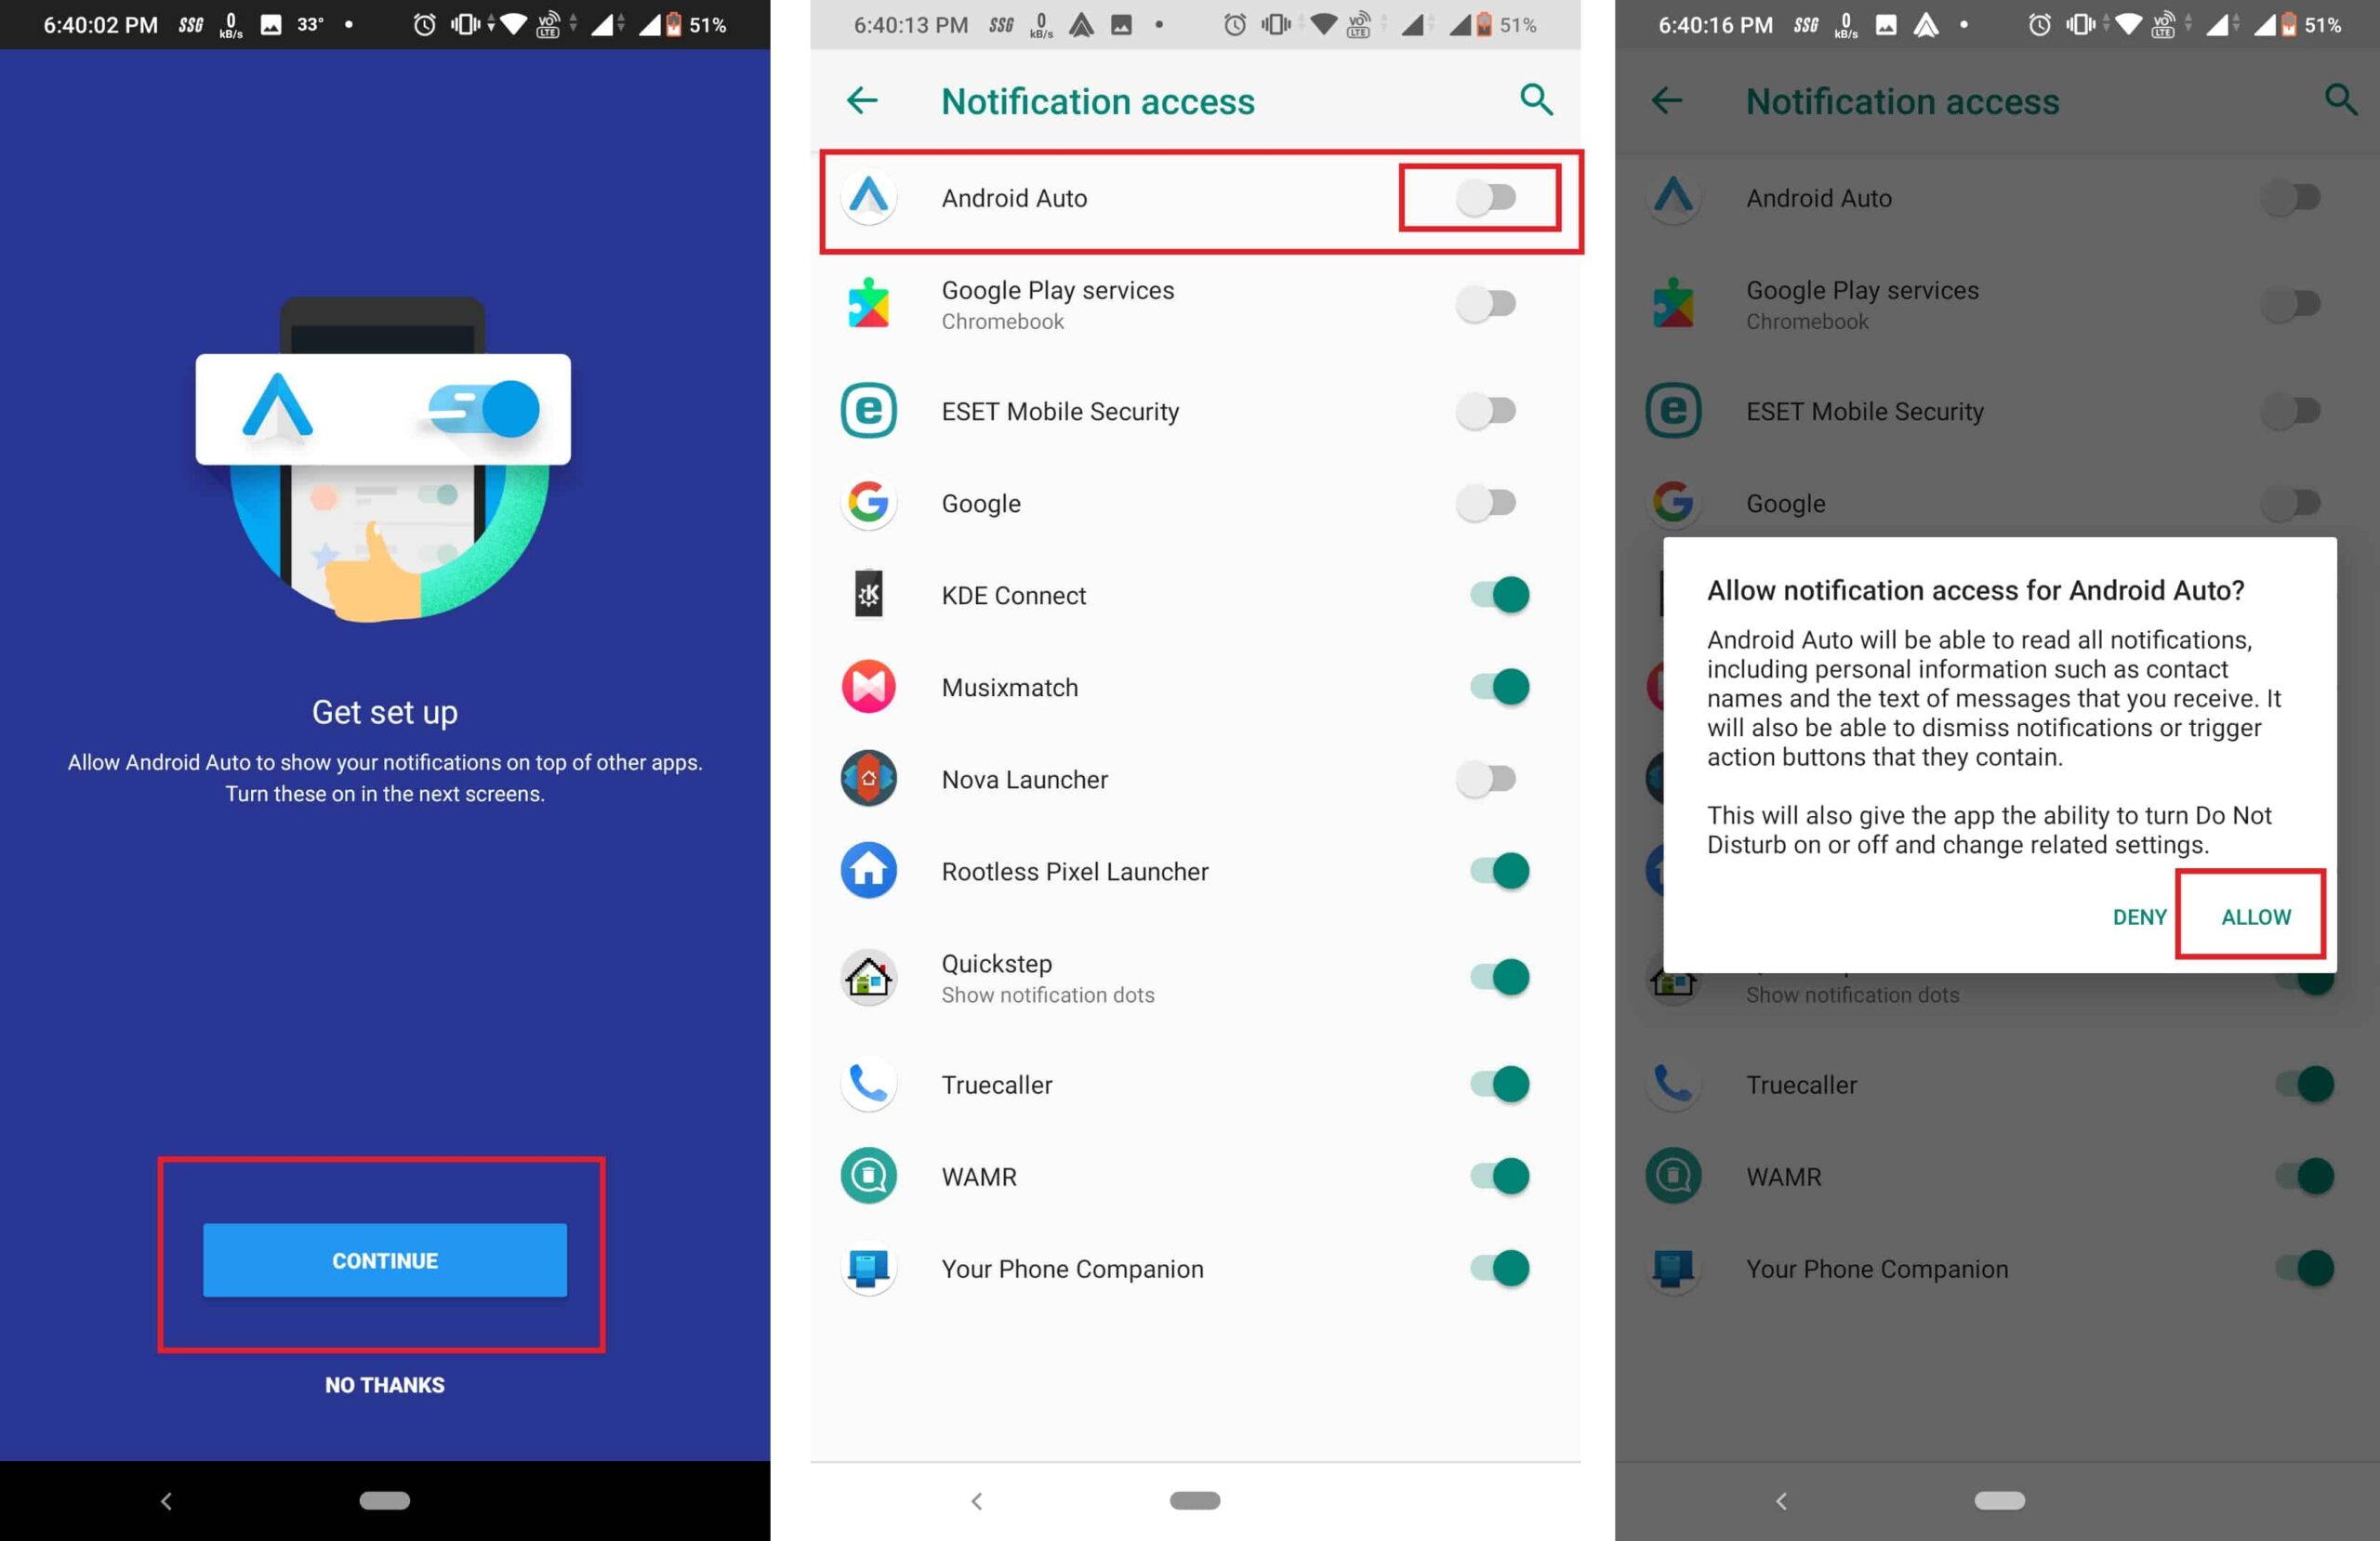 Setting up Android Auto on your smartphone